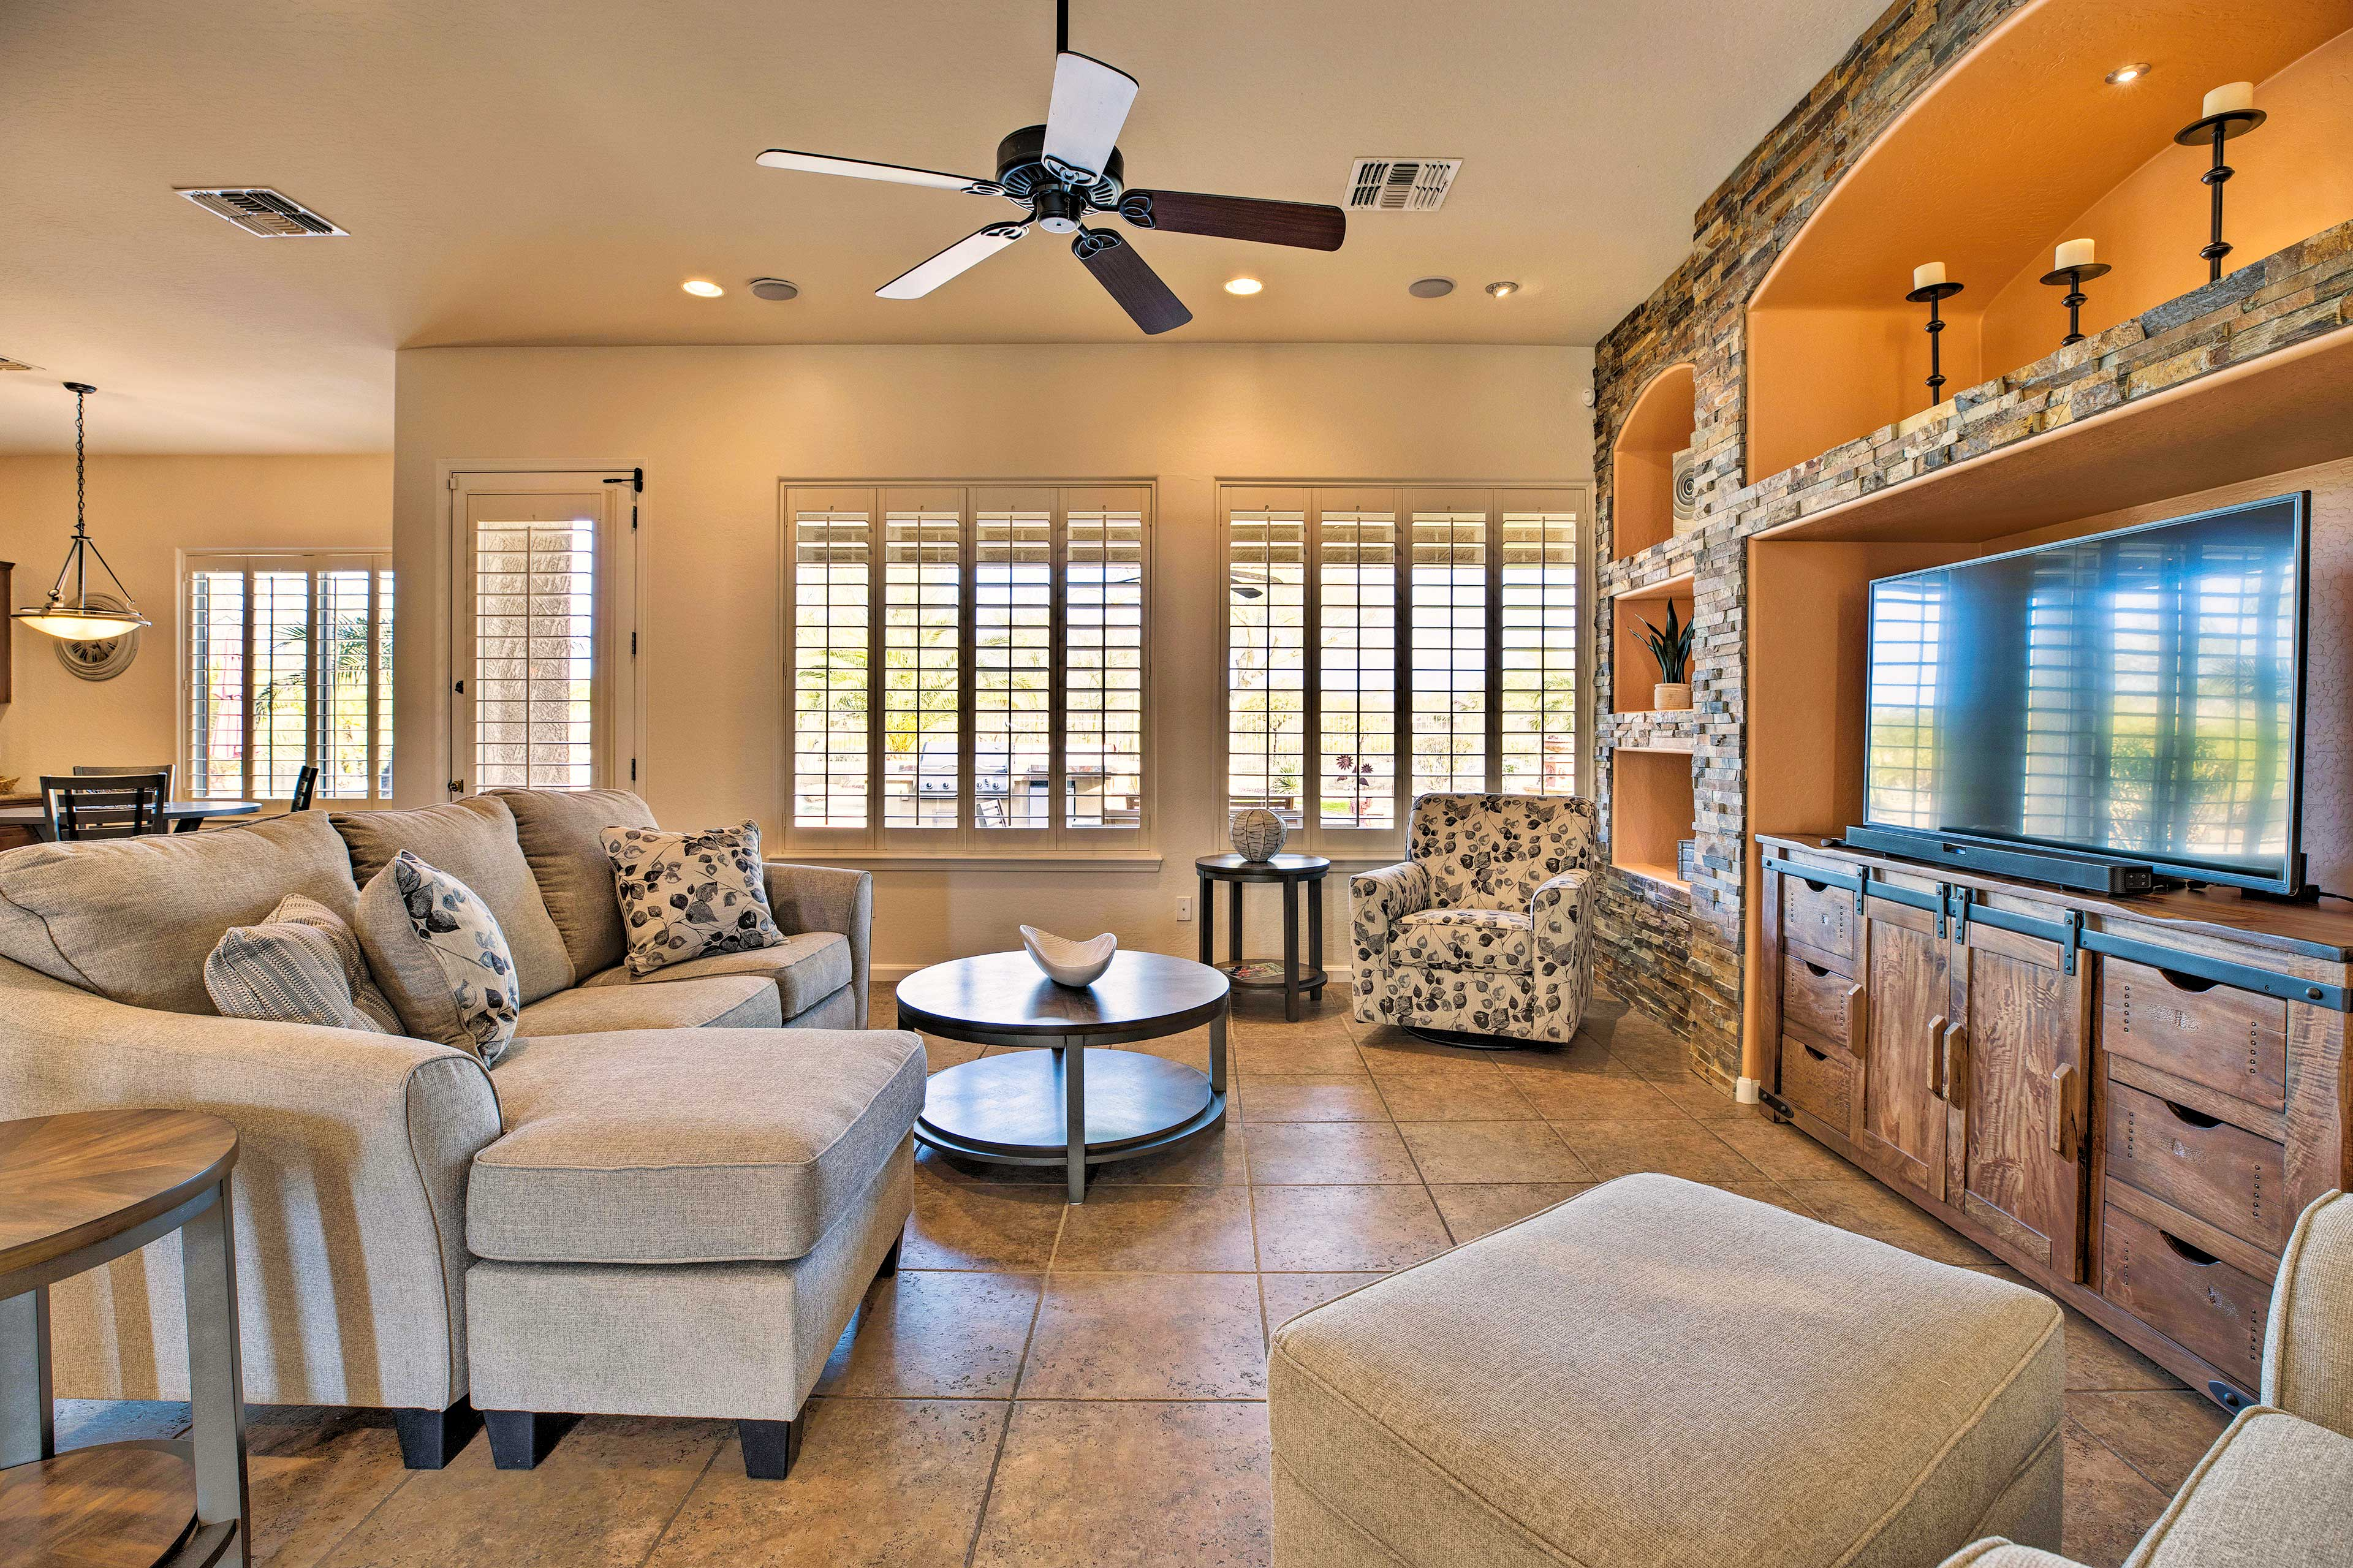 Inside the vacation rental, you'll find all of the comforts of home and more!